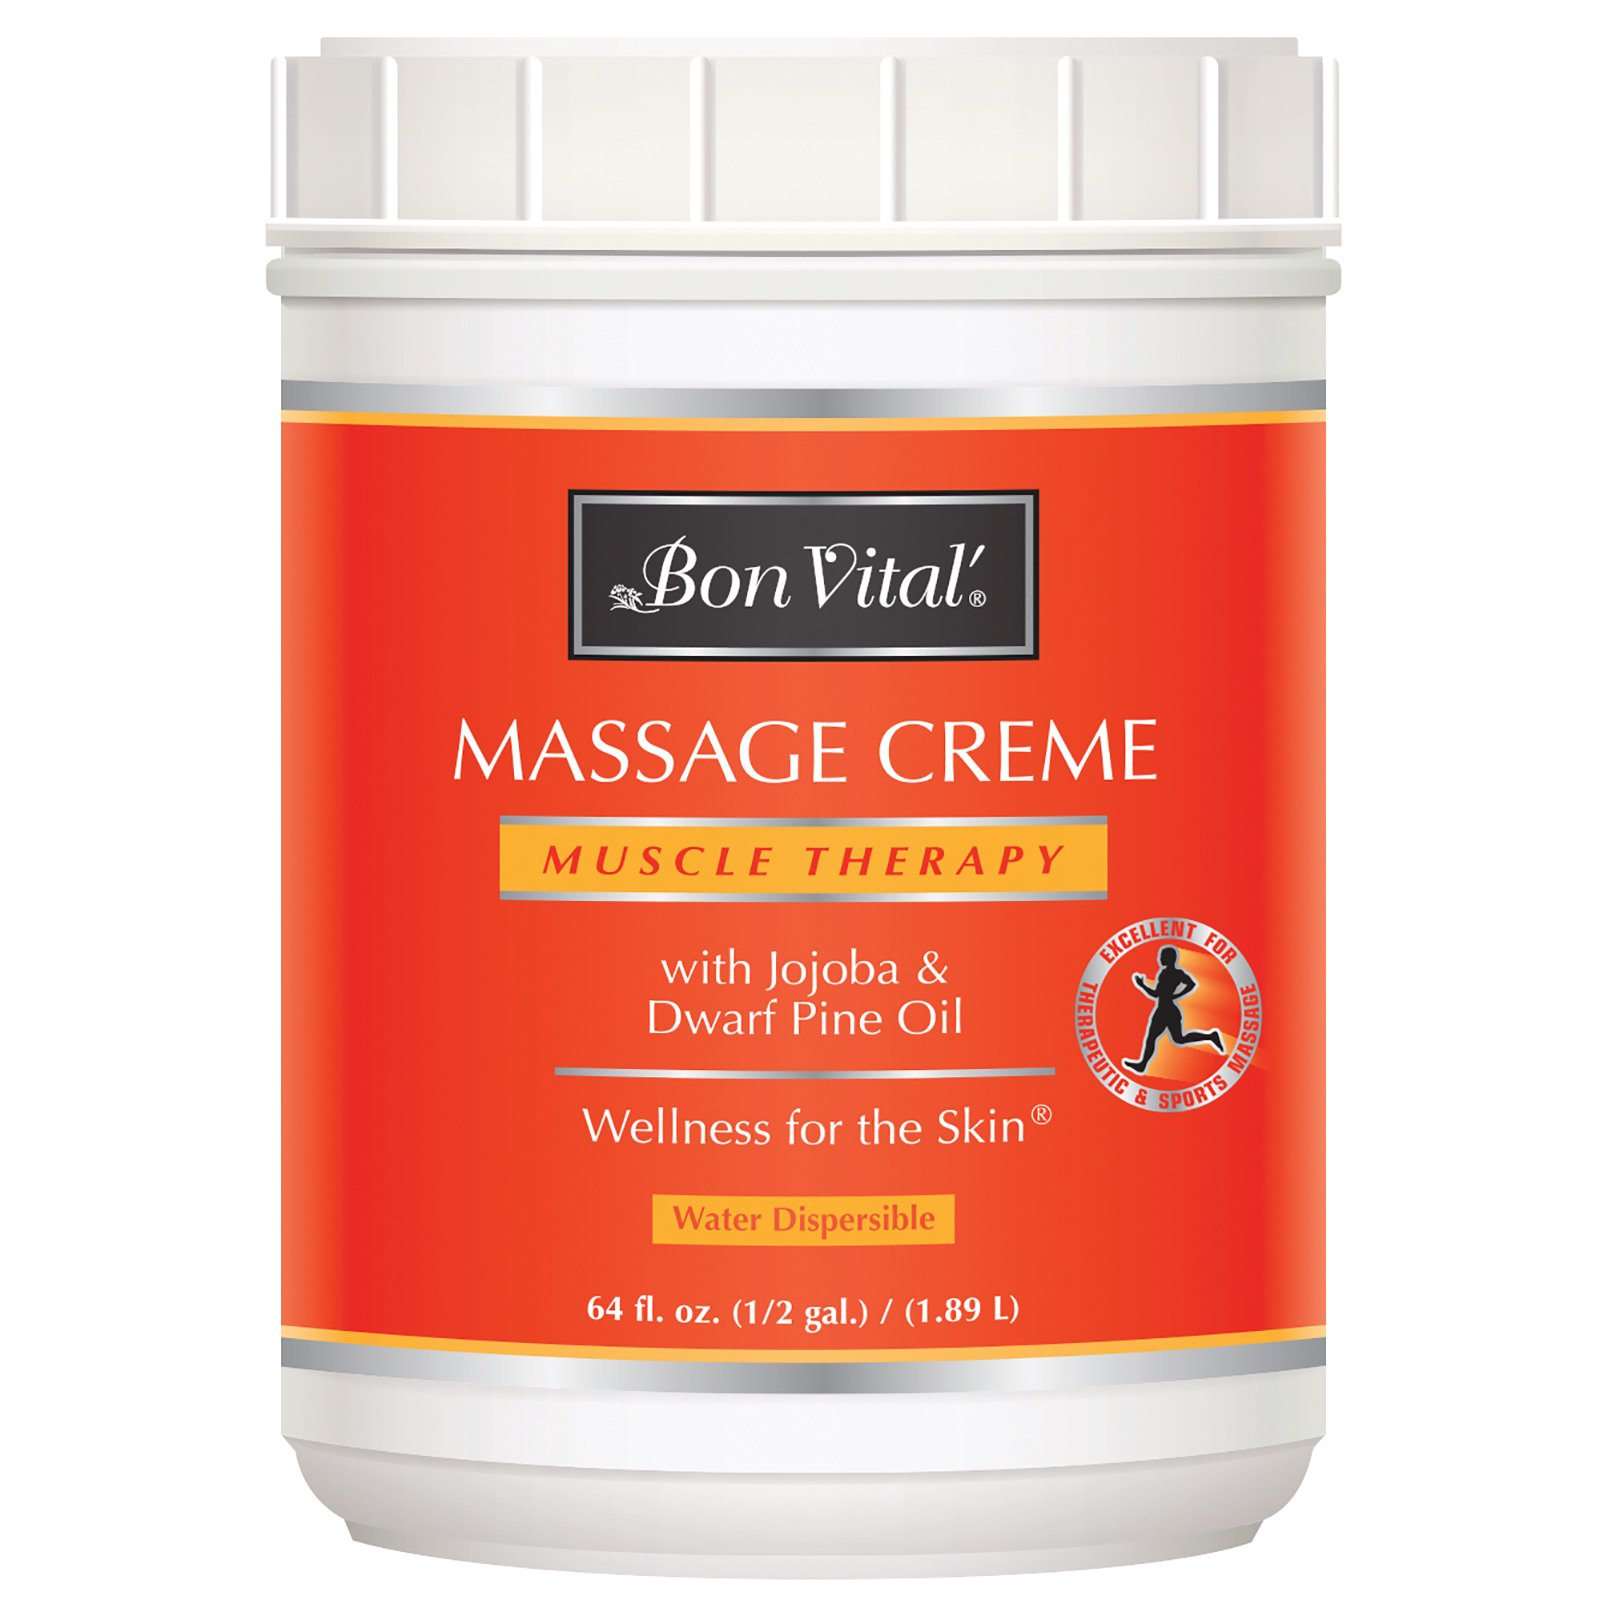 Bon Vital' Muscle Therapy Massage Crème, Professional Massage Cream with Dwarf Pine Oil & Essential Oils for Relaxation & Sore Muscle Relief, Deep Tissue & Sports Massage Techniques, 1/2 Gallon Jar by Bon Vital